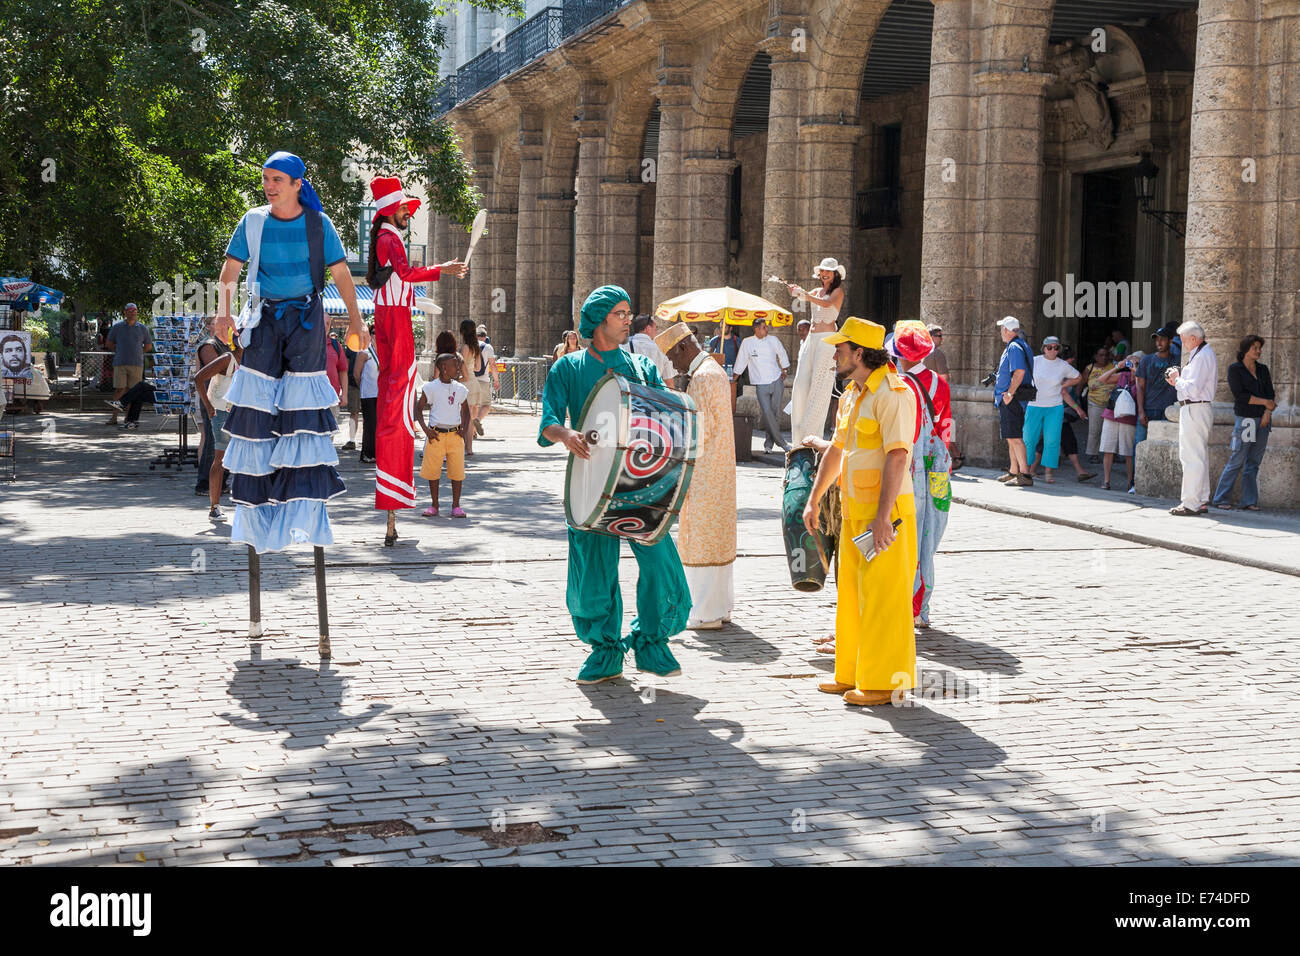 Street entertainers including performers on stilts and playing a big drum at Plaza de Armas, downtown Havana, Cuba - Stock Image